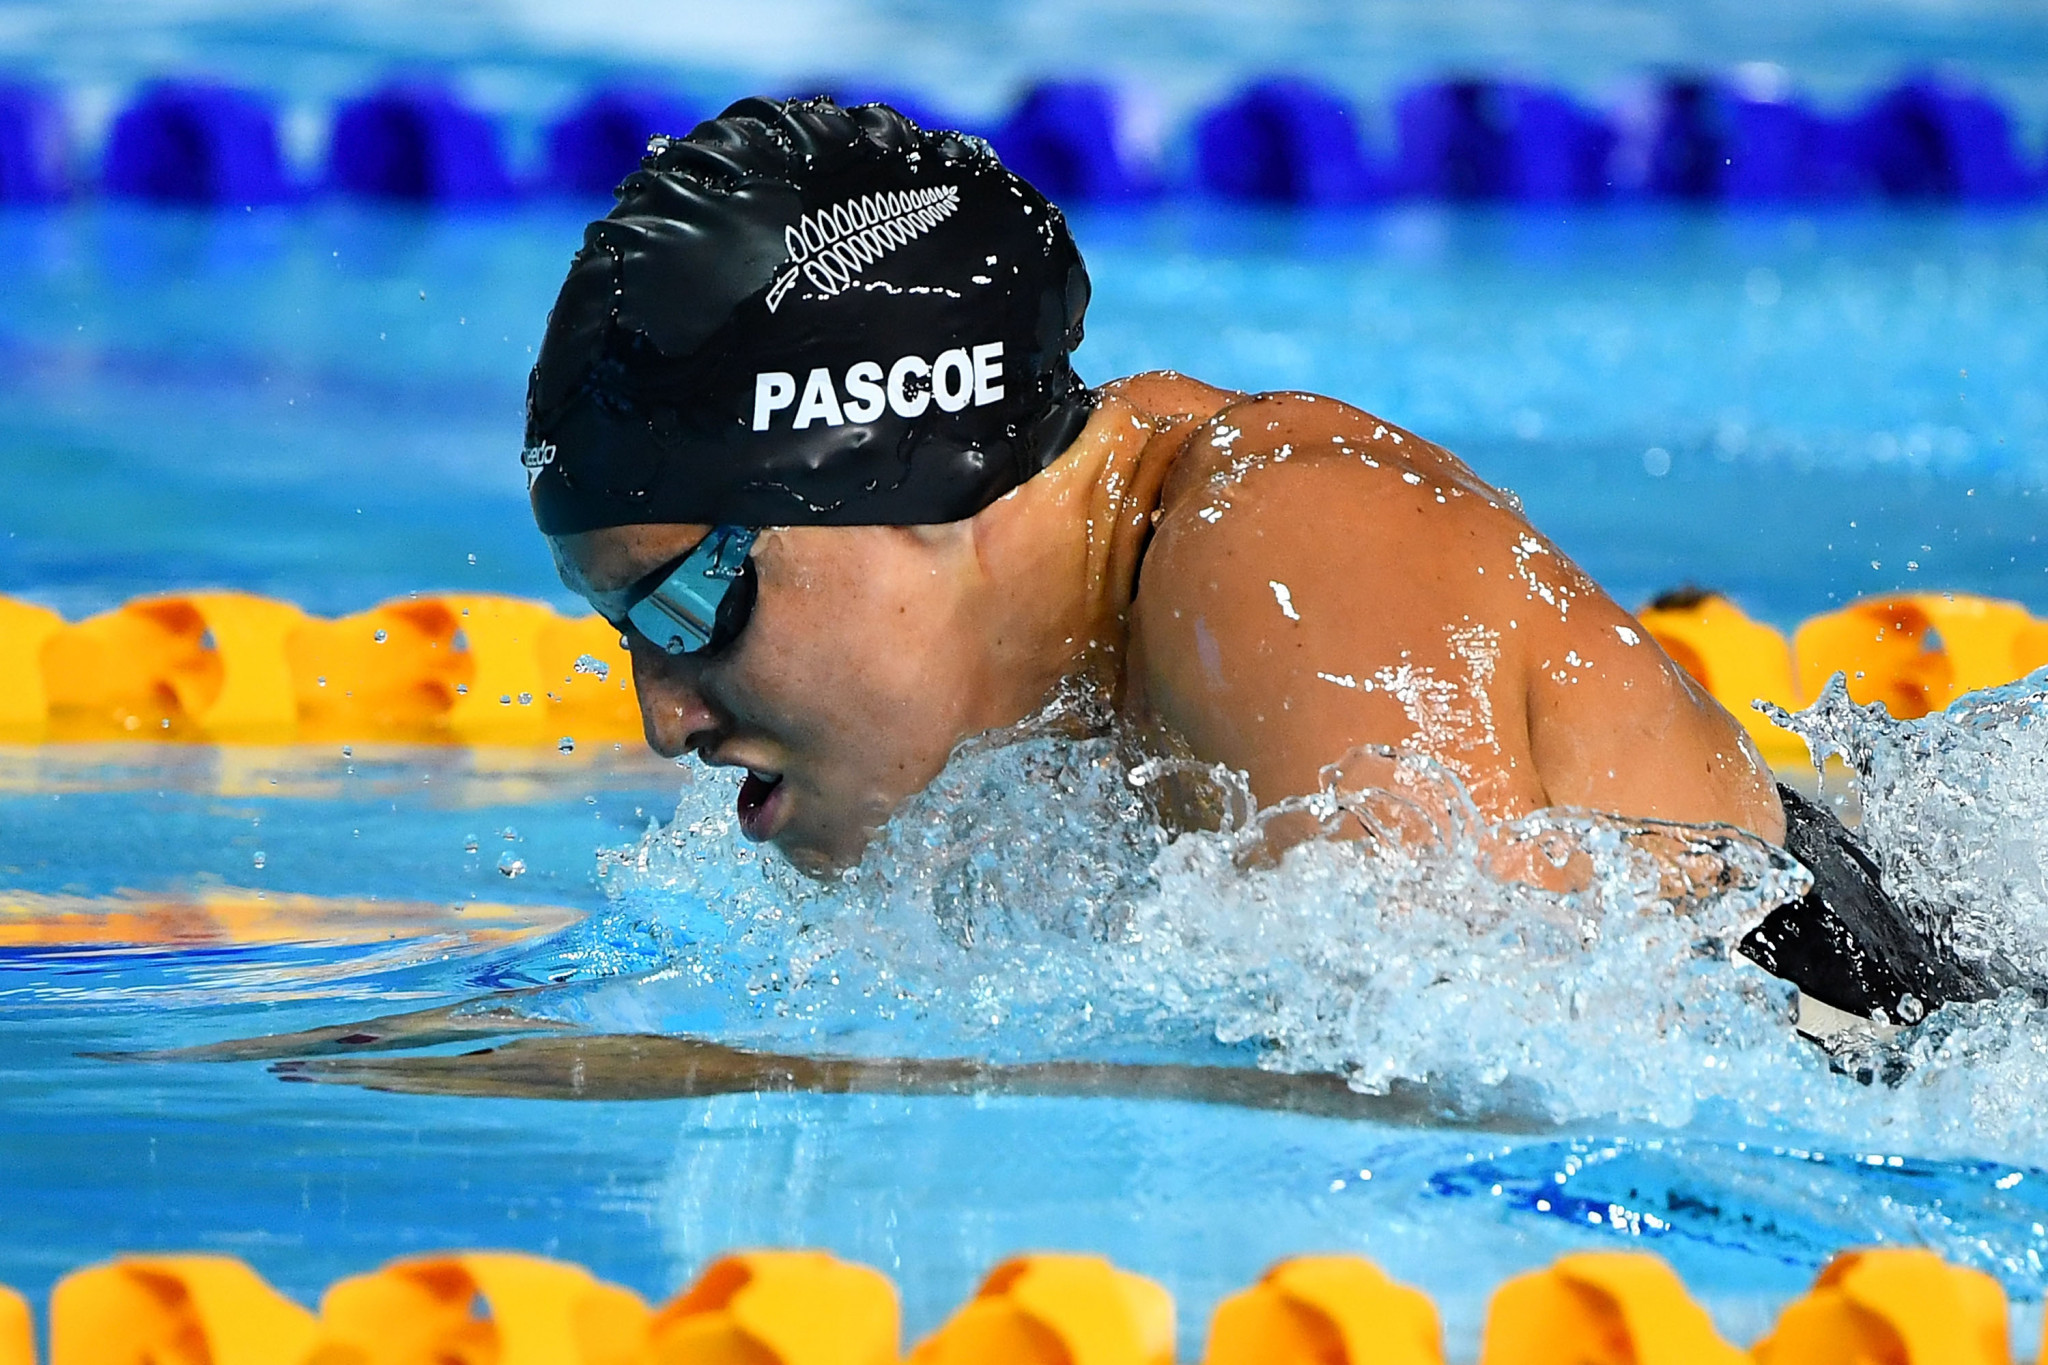 Swimming star Pascoe nominated for IPC Athlete of the Month